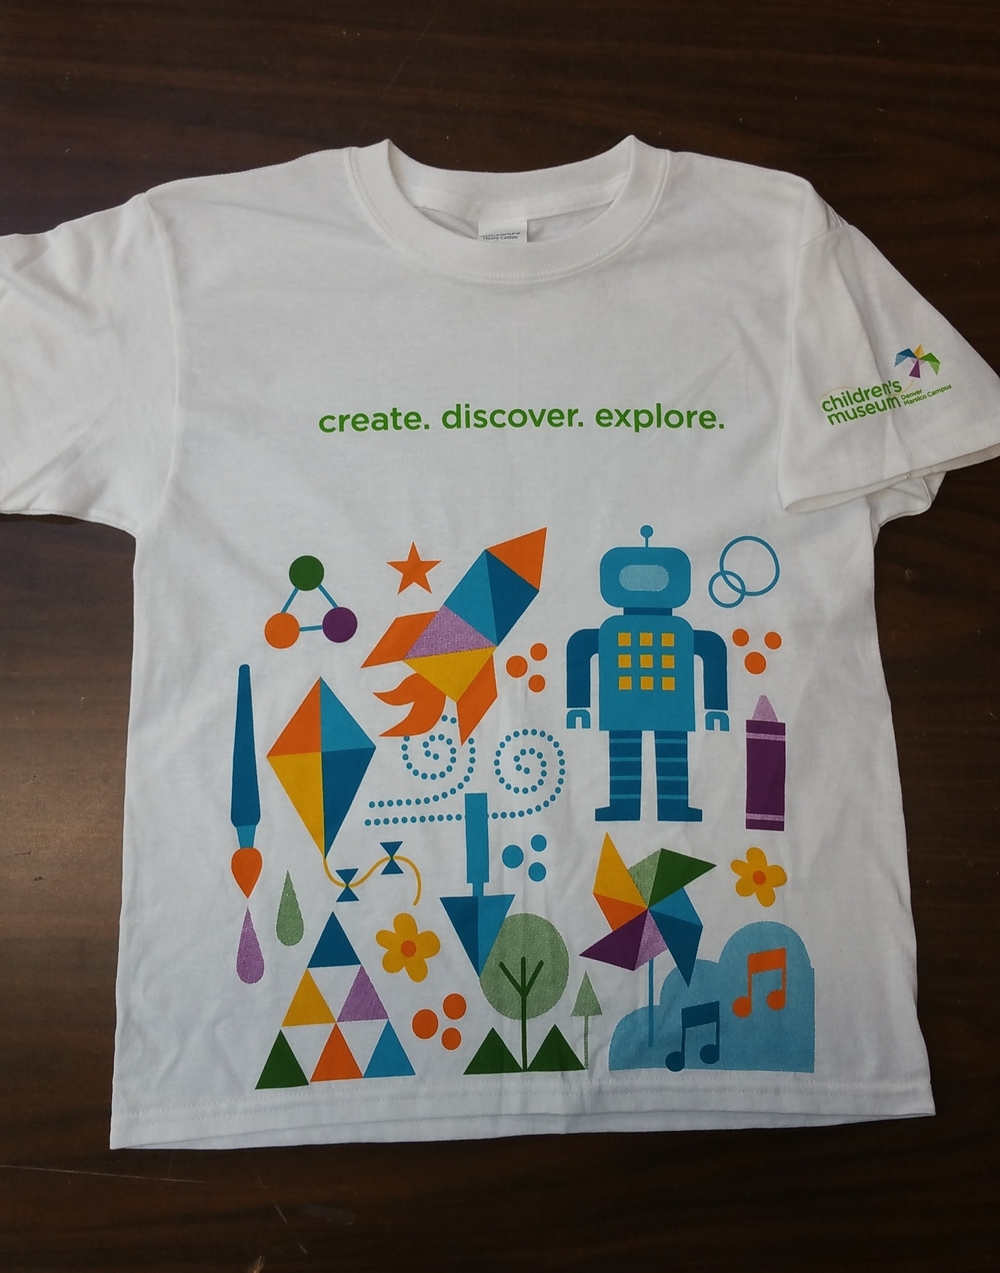 Six-Color shirt for Children's Museum